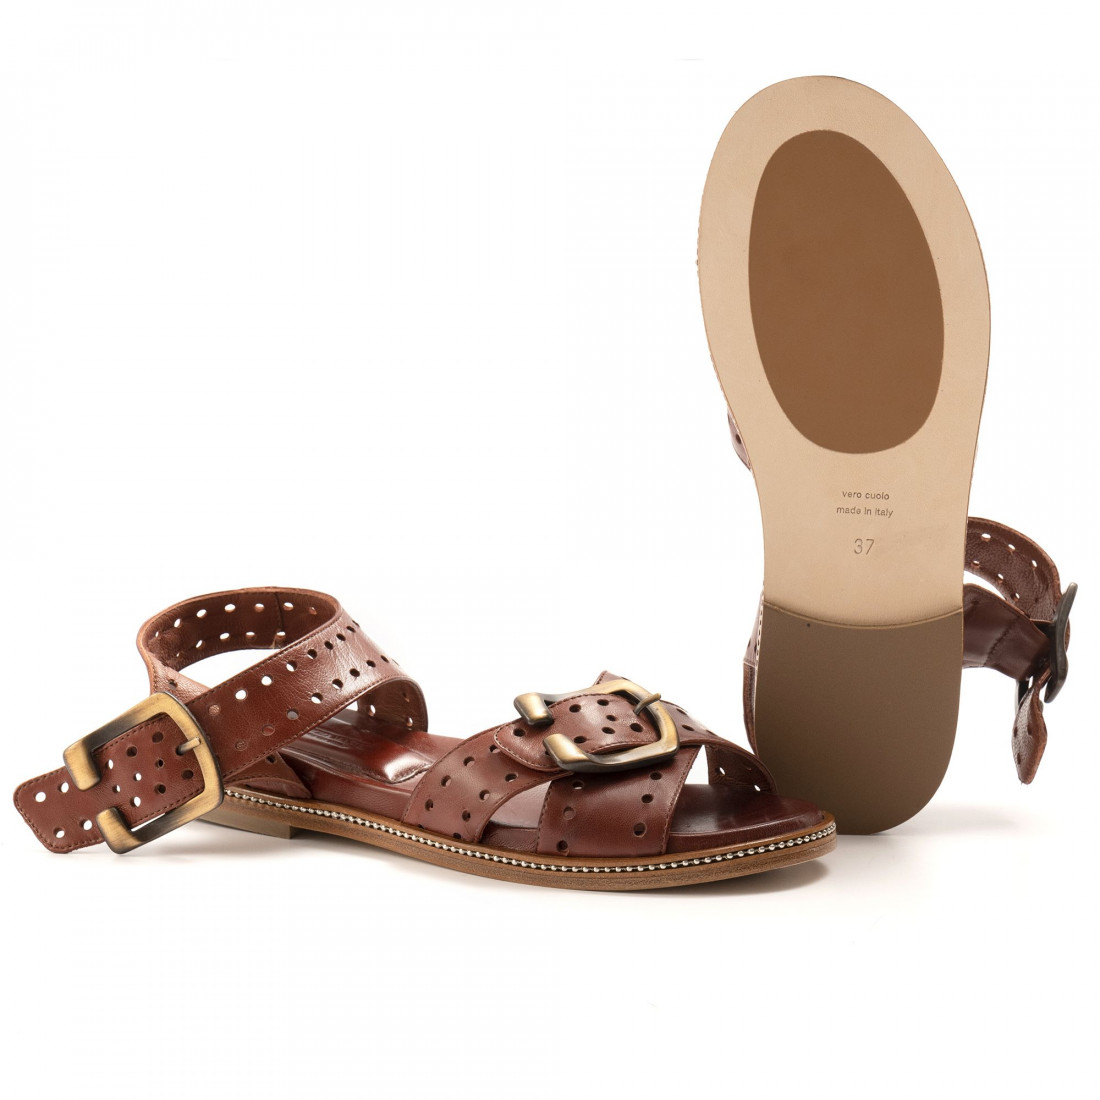 sandals woman lorenzo masiero 192744abb arragnac  6926